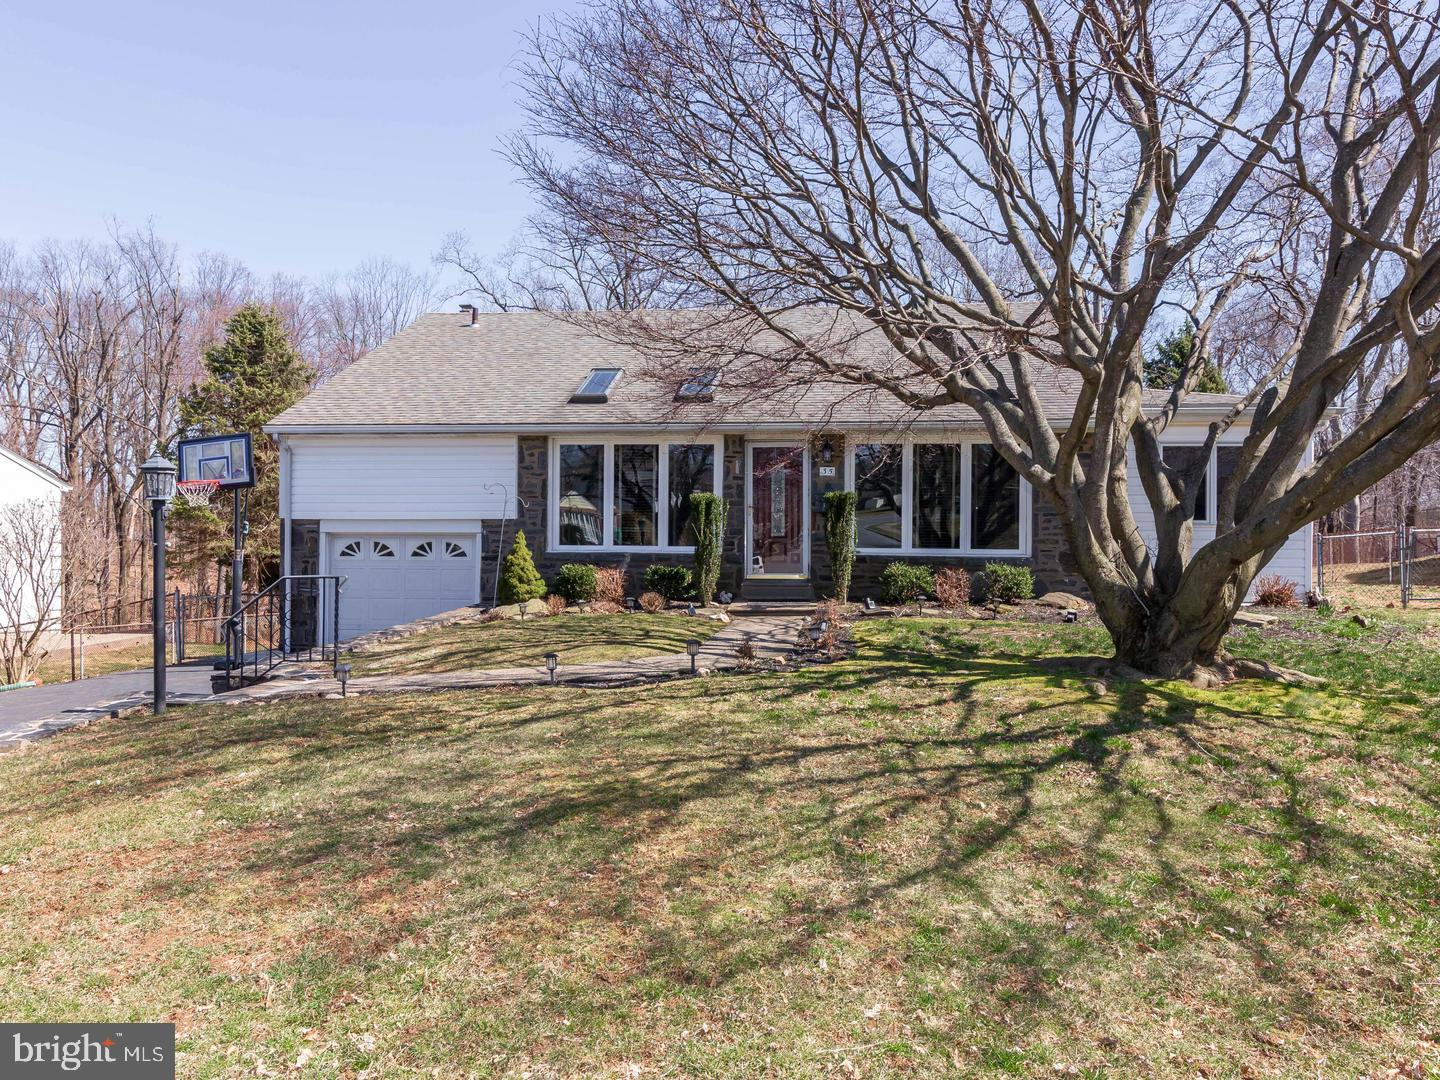 35 Cambridge Rd, Broomall, PA 19008, MLS #PADE439050 - Howard Hanna